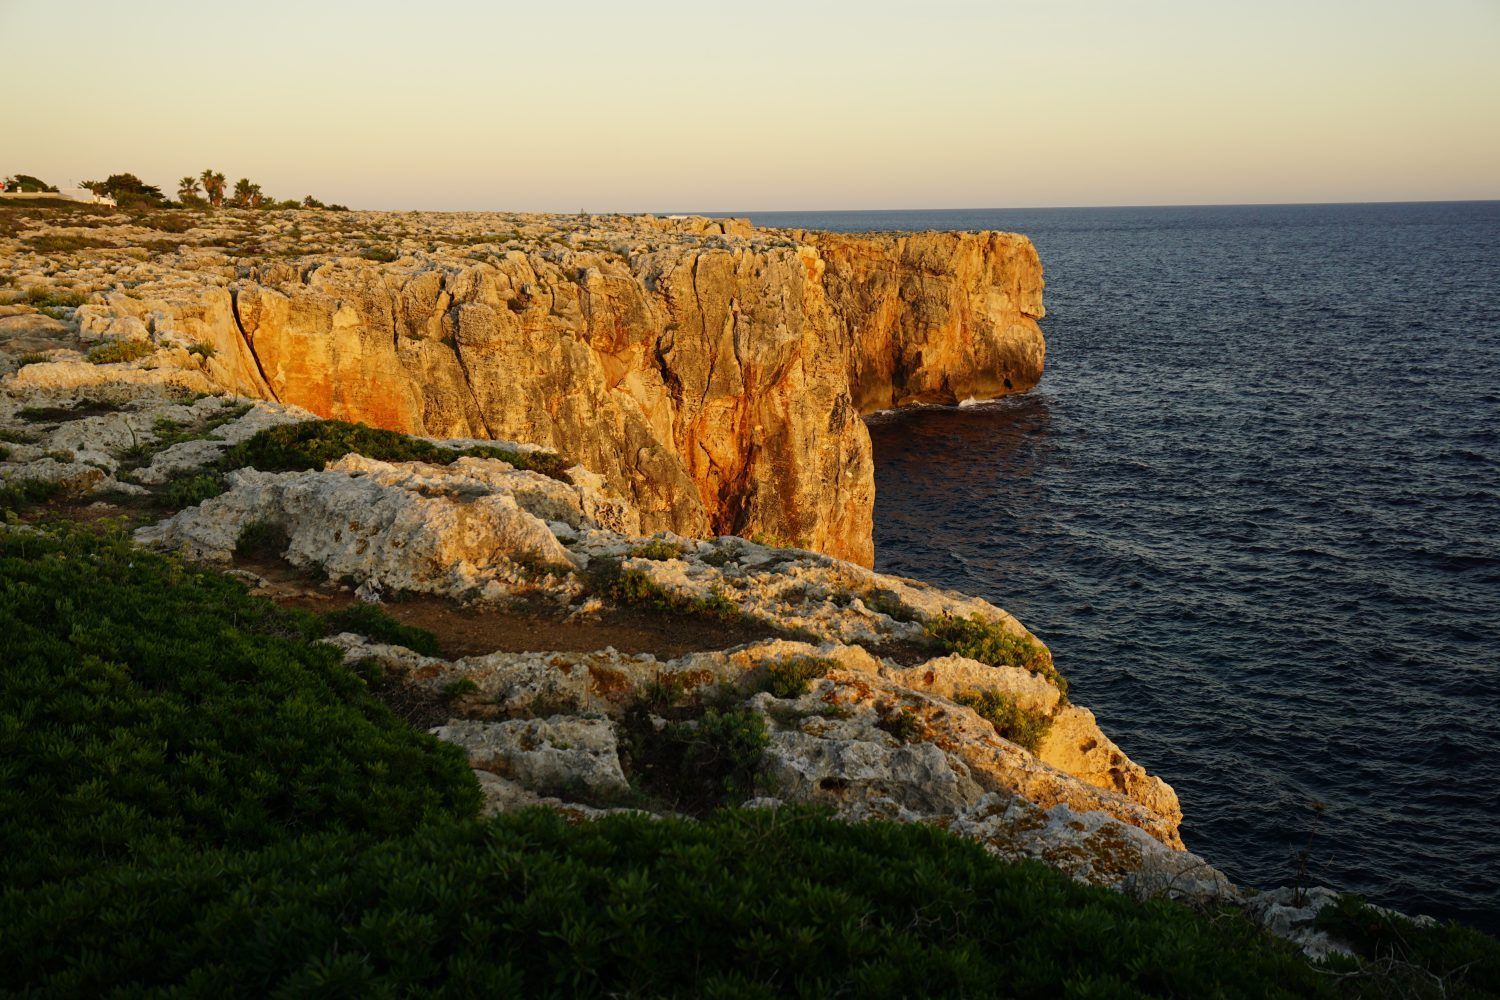 Sunset Over the Cliffs in Menorca